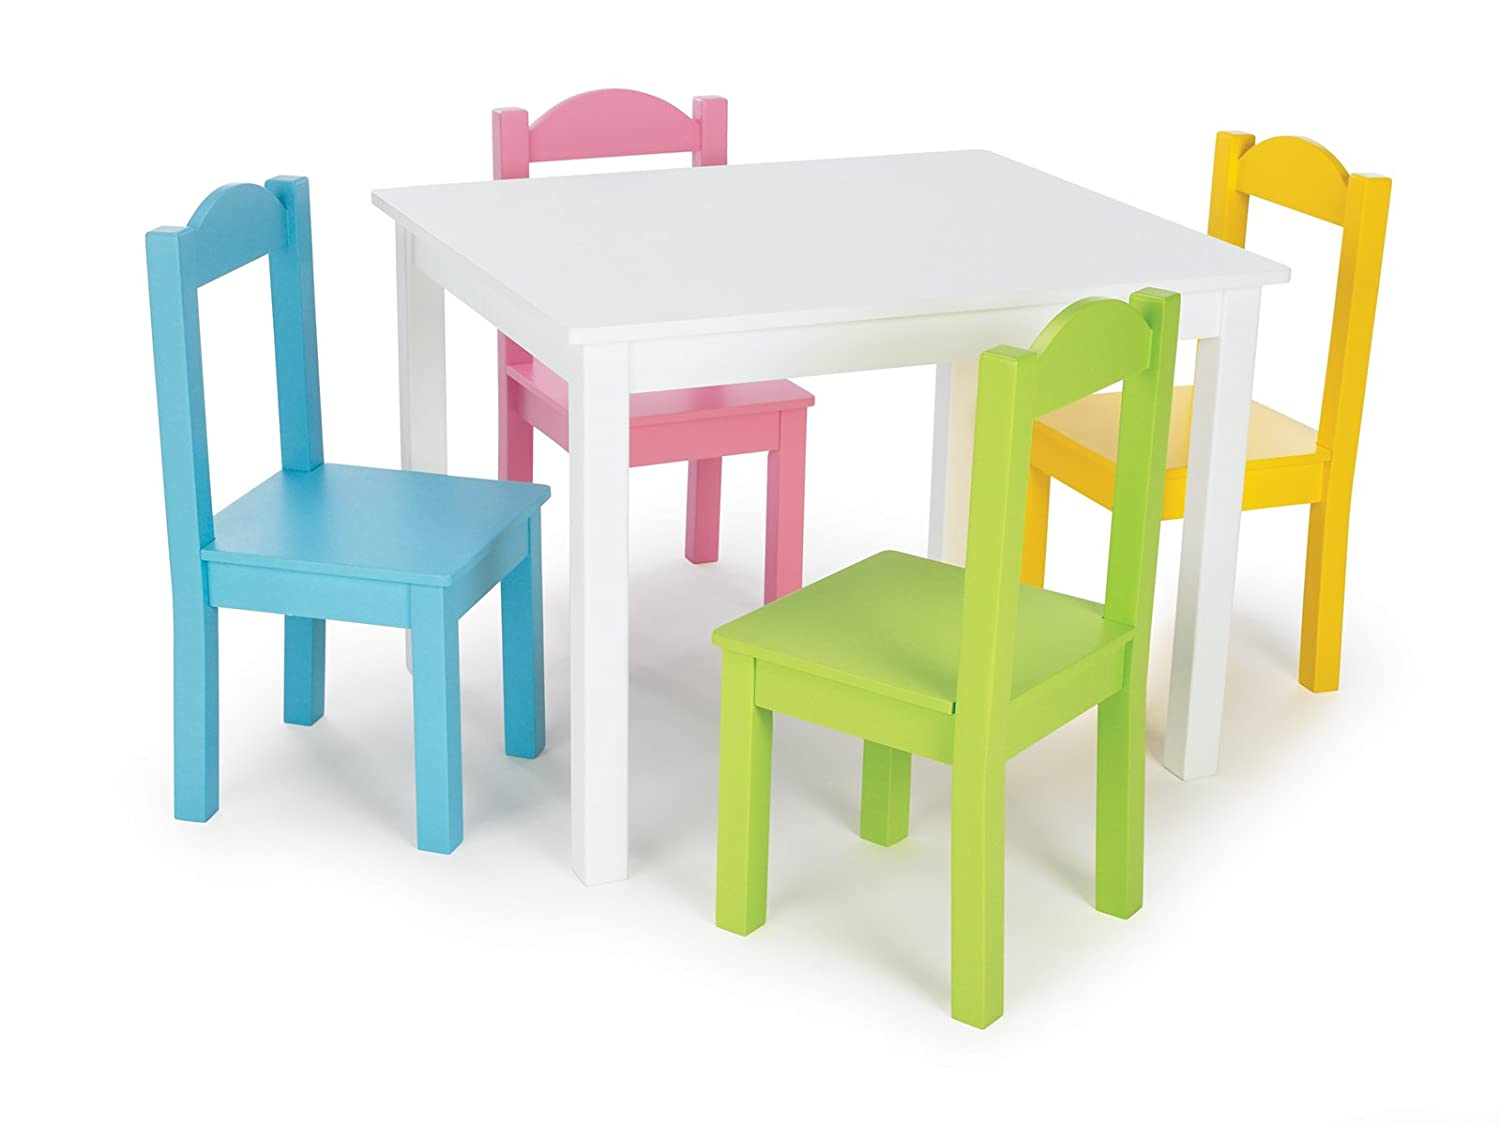 Kids Wooden Table And Chairs  HomeLingo.com